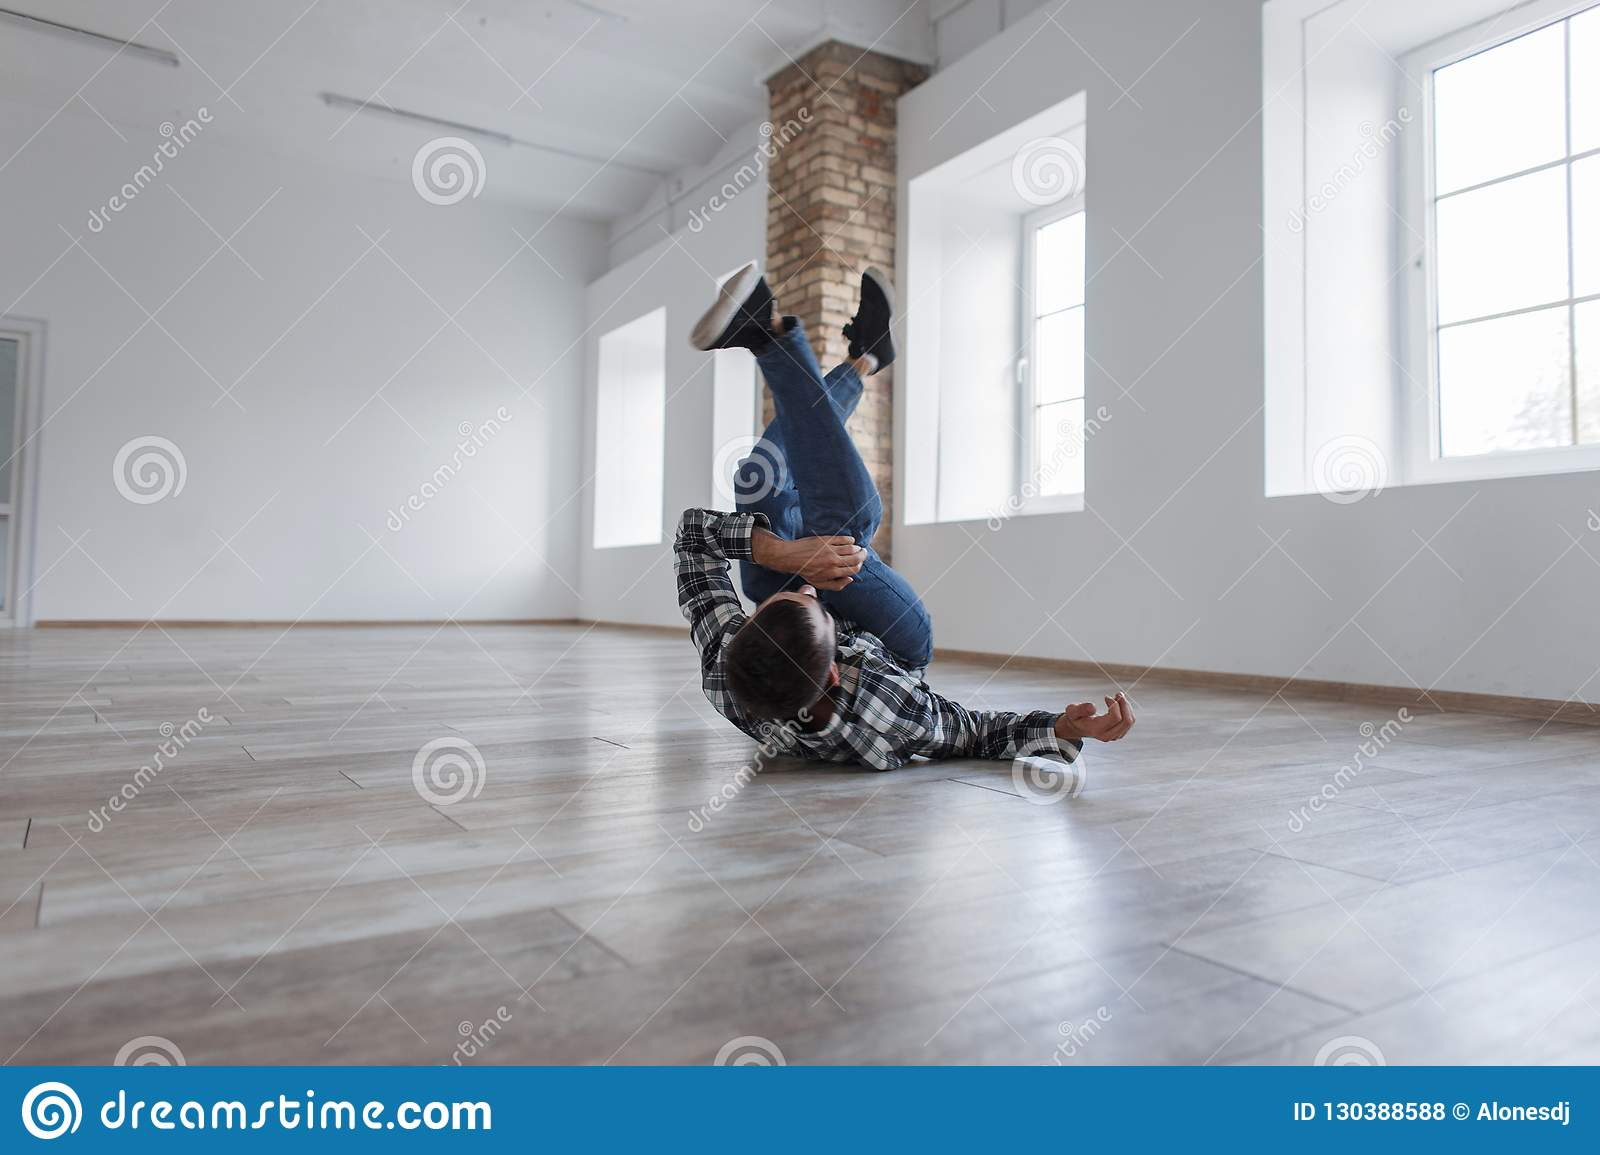 Stylish handsome young man in a shirt with jeans dancing break